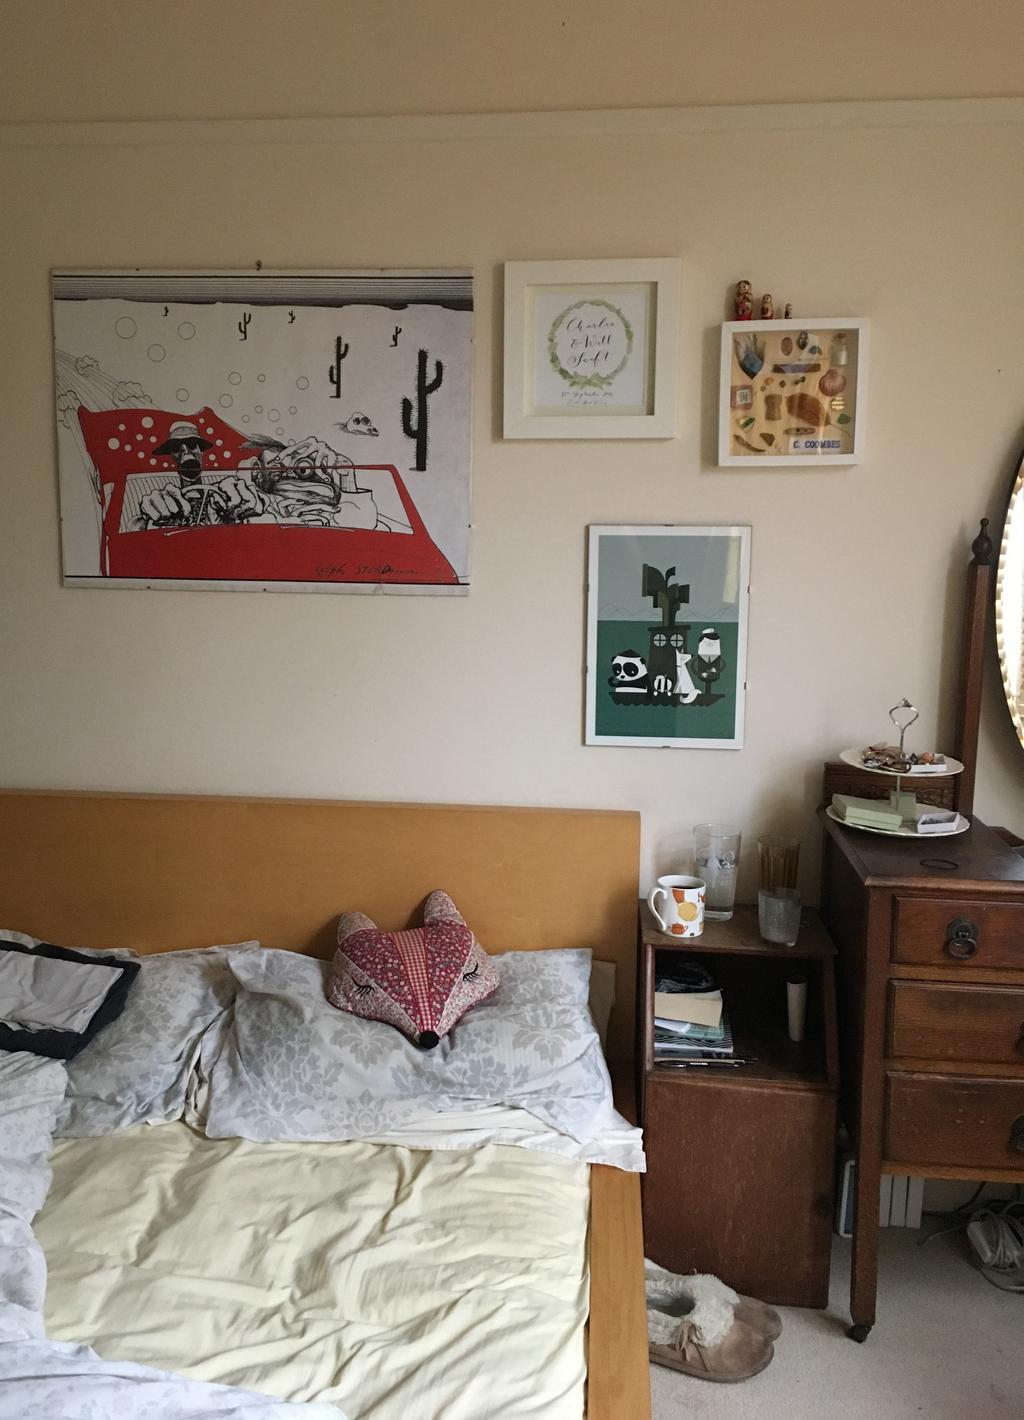 Farewell Number 36, Bedroom, Unmade bed, Gallery Wall